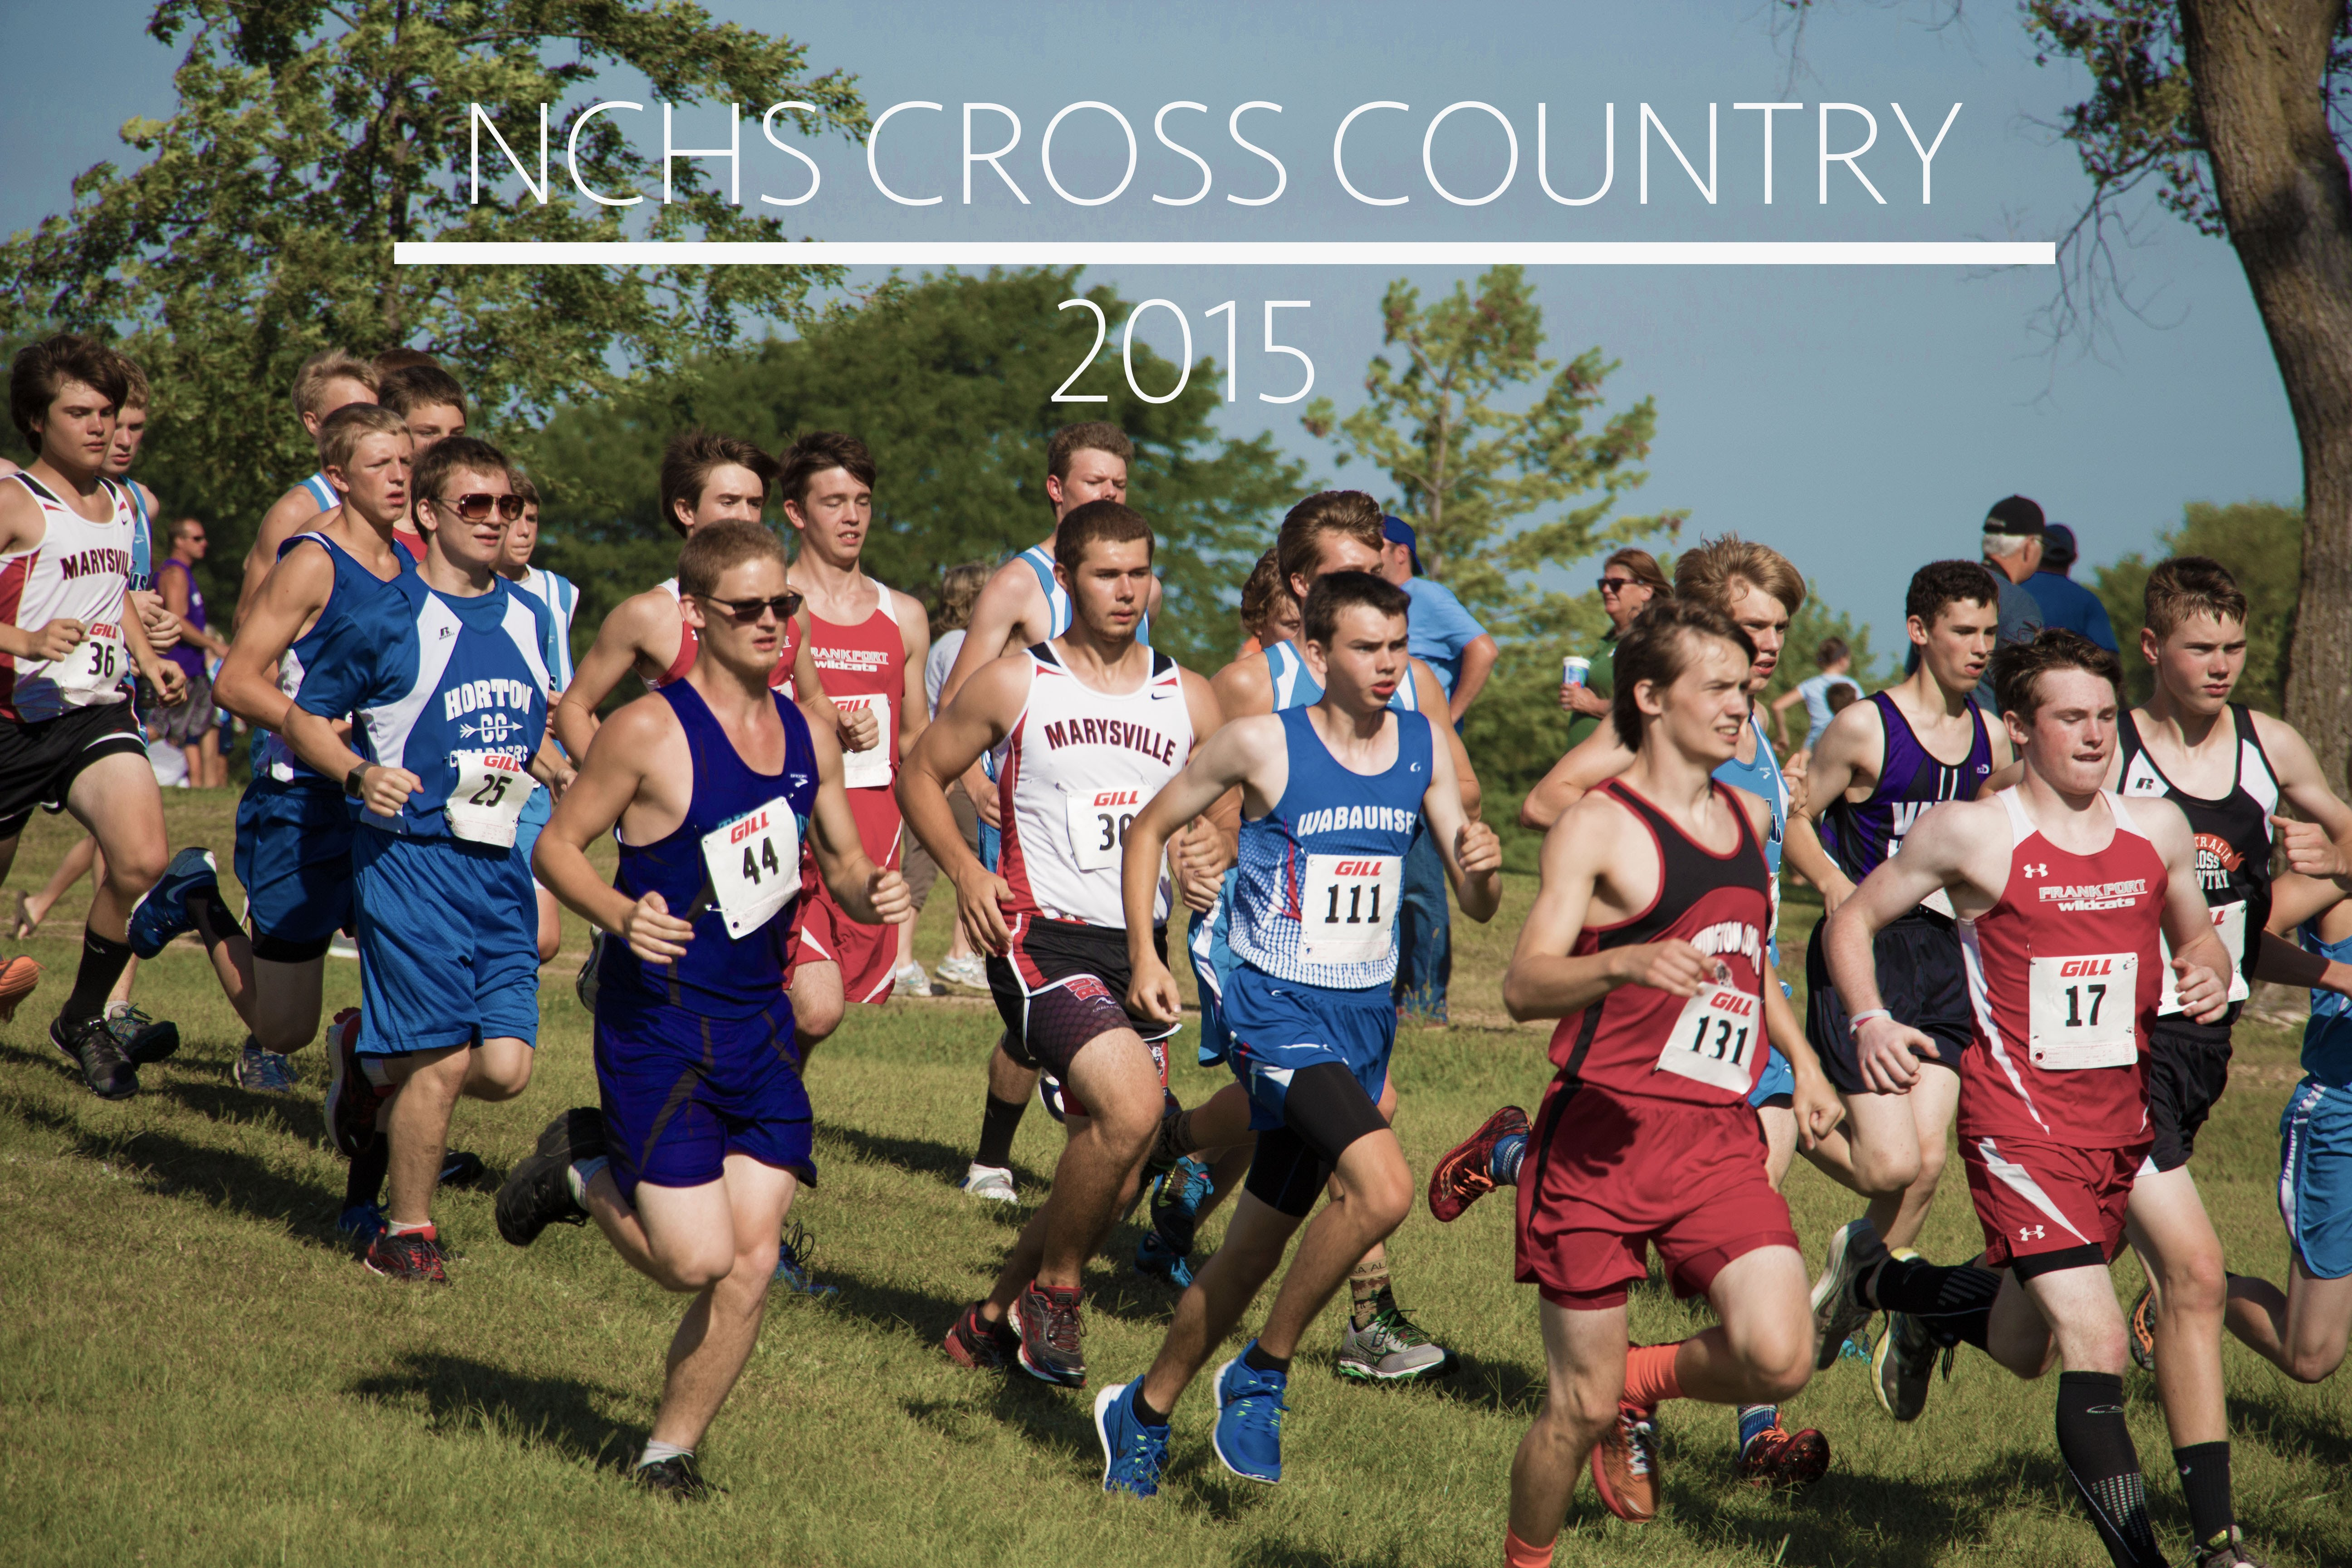 ccc cross country meet nc 2014